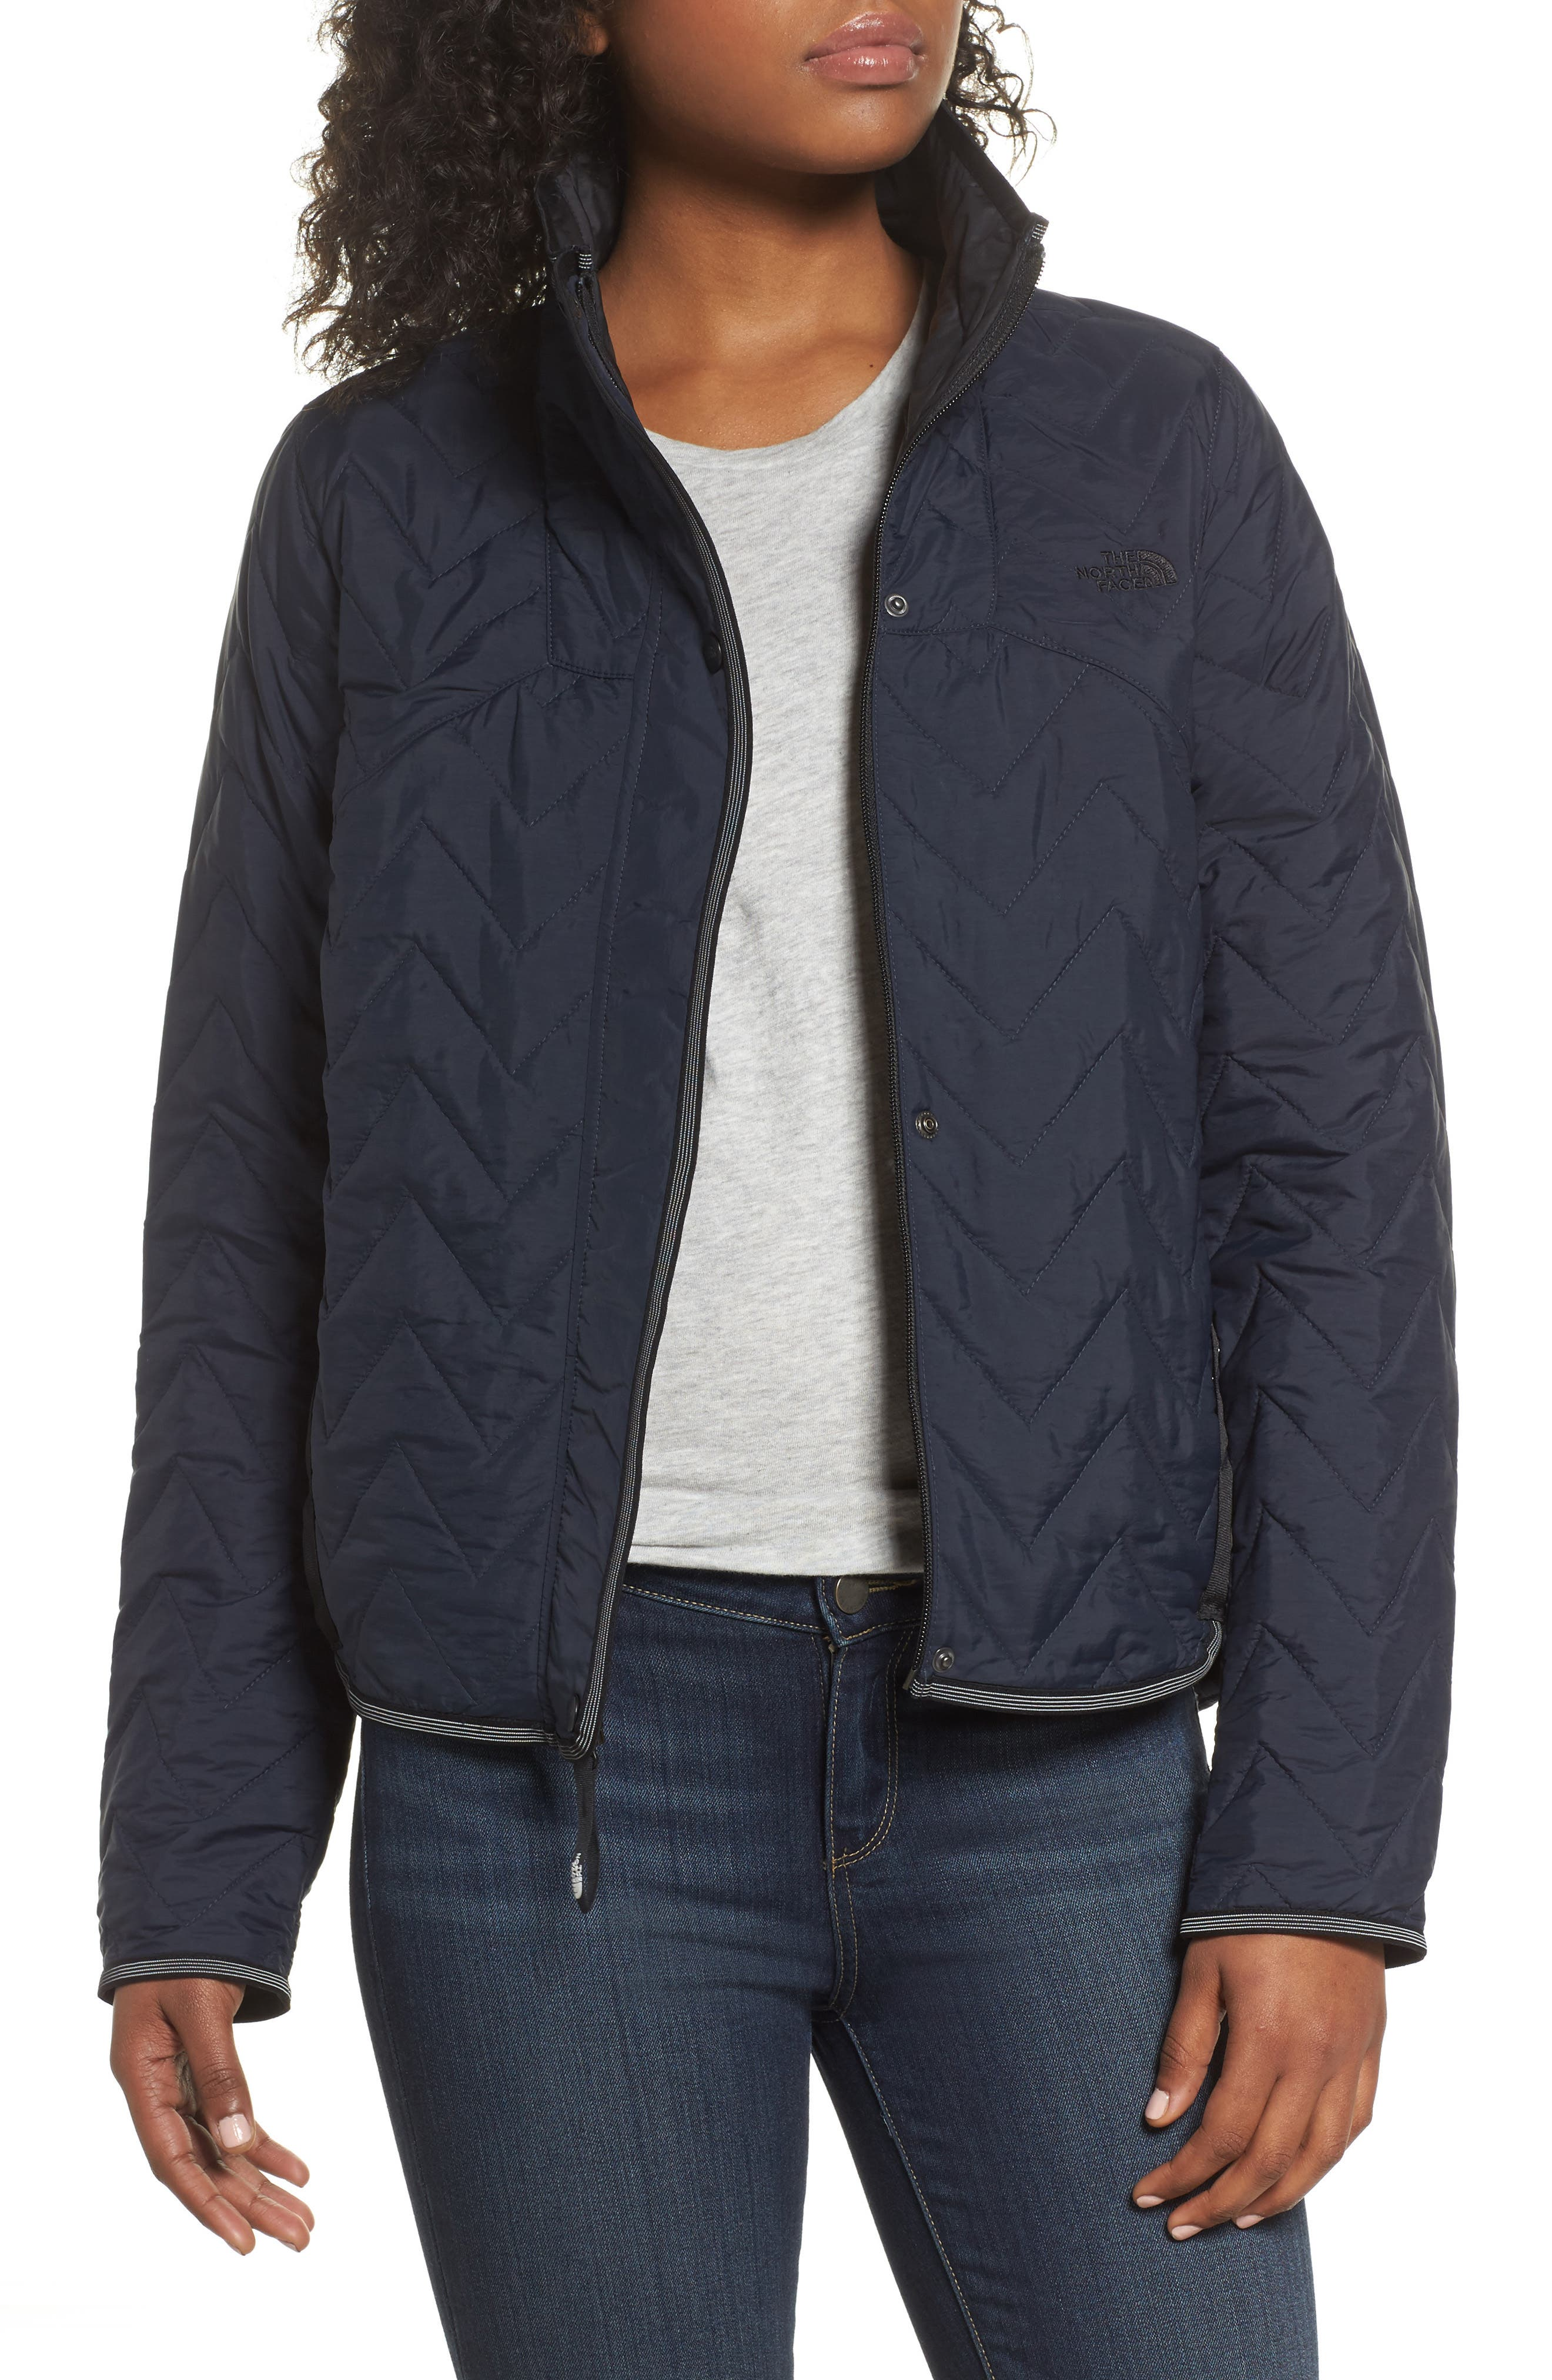 Westborough Insulated Jacket,                         Main,                         color, Urban Navy